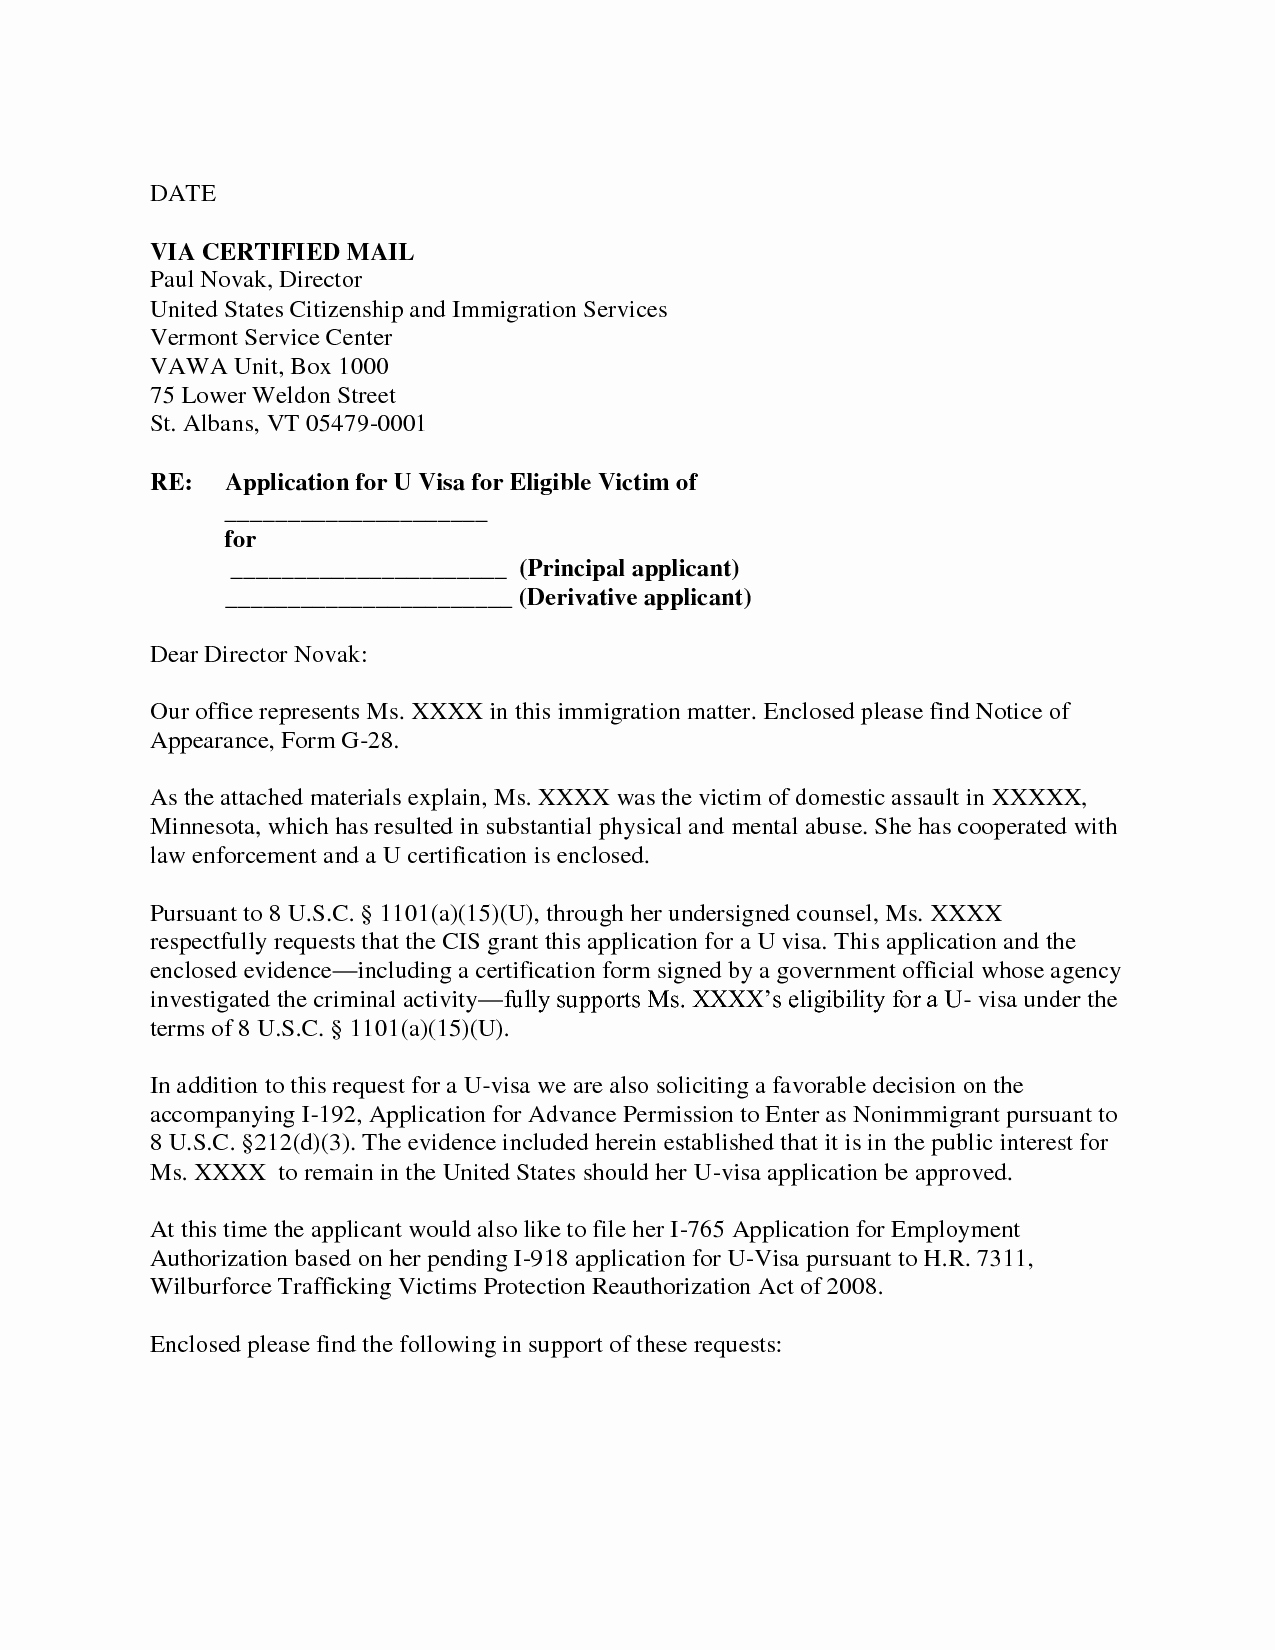 Personal Statement Immigrant Example Inspirational Letter Example Waiver Letter for Immigration Sample